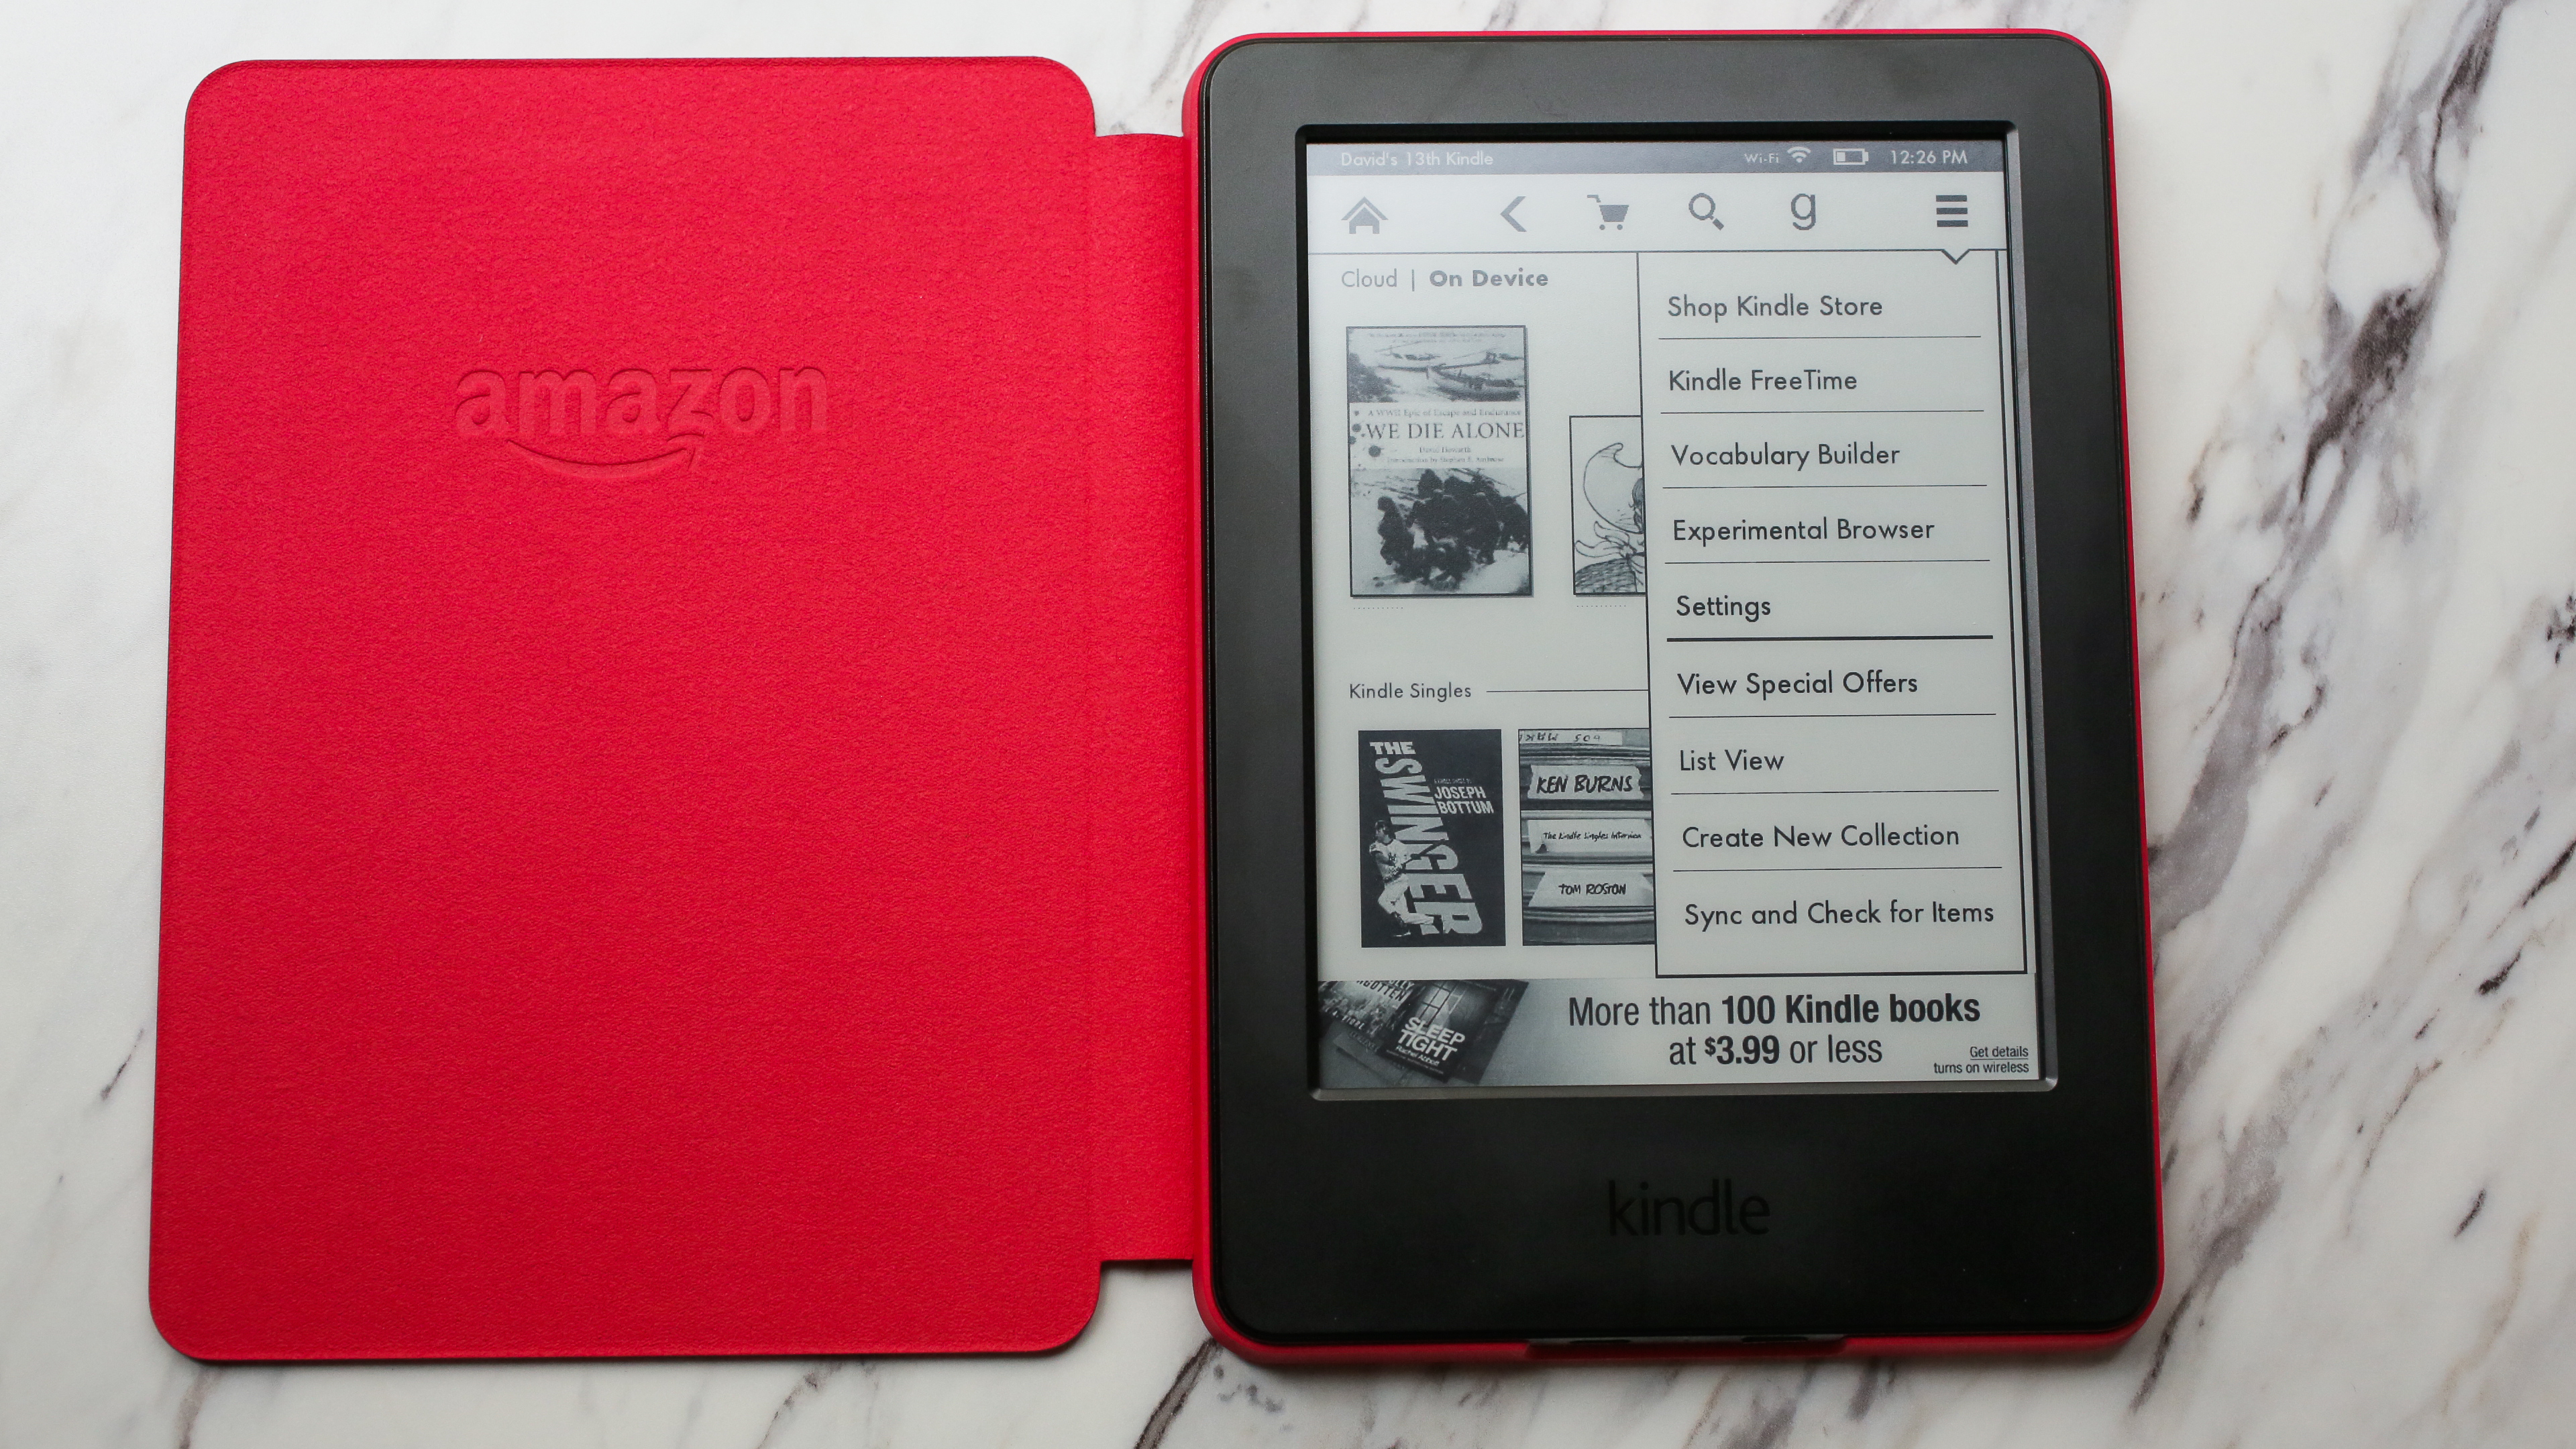 kindle-2014-add-product-photos03.jpg